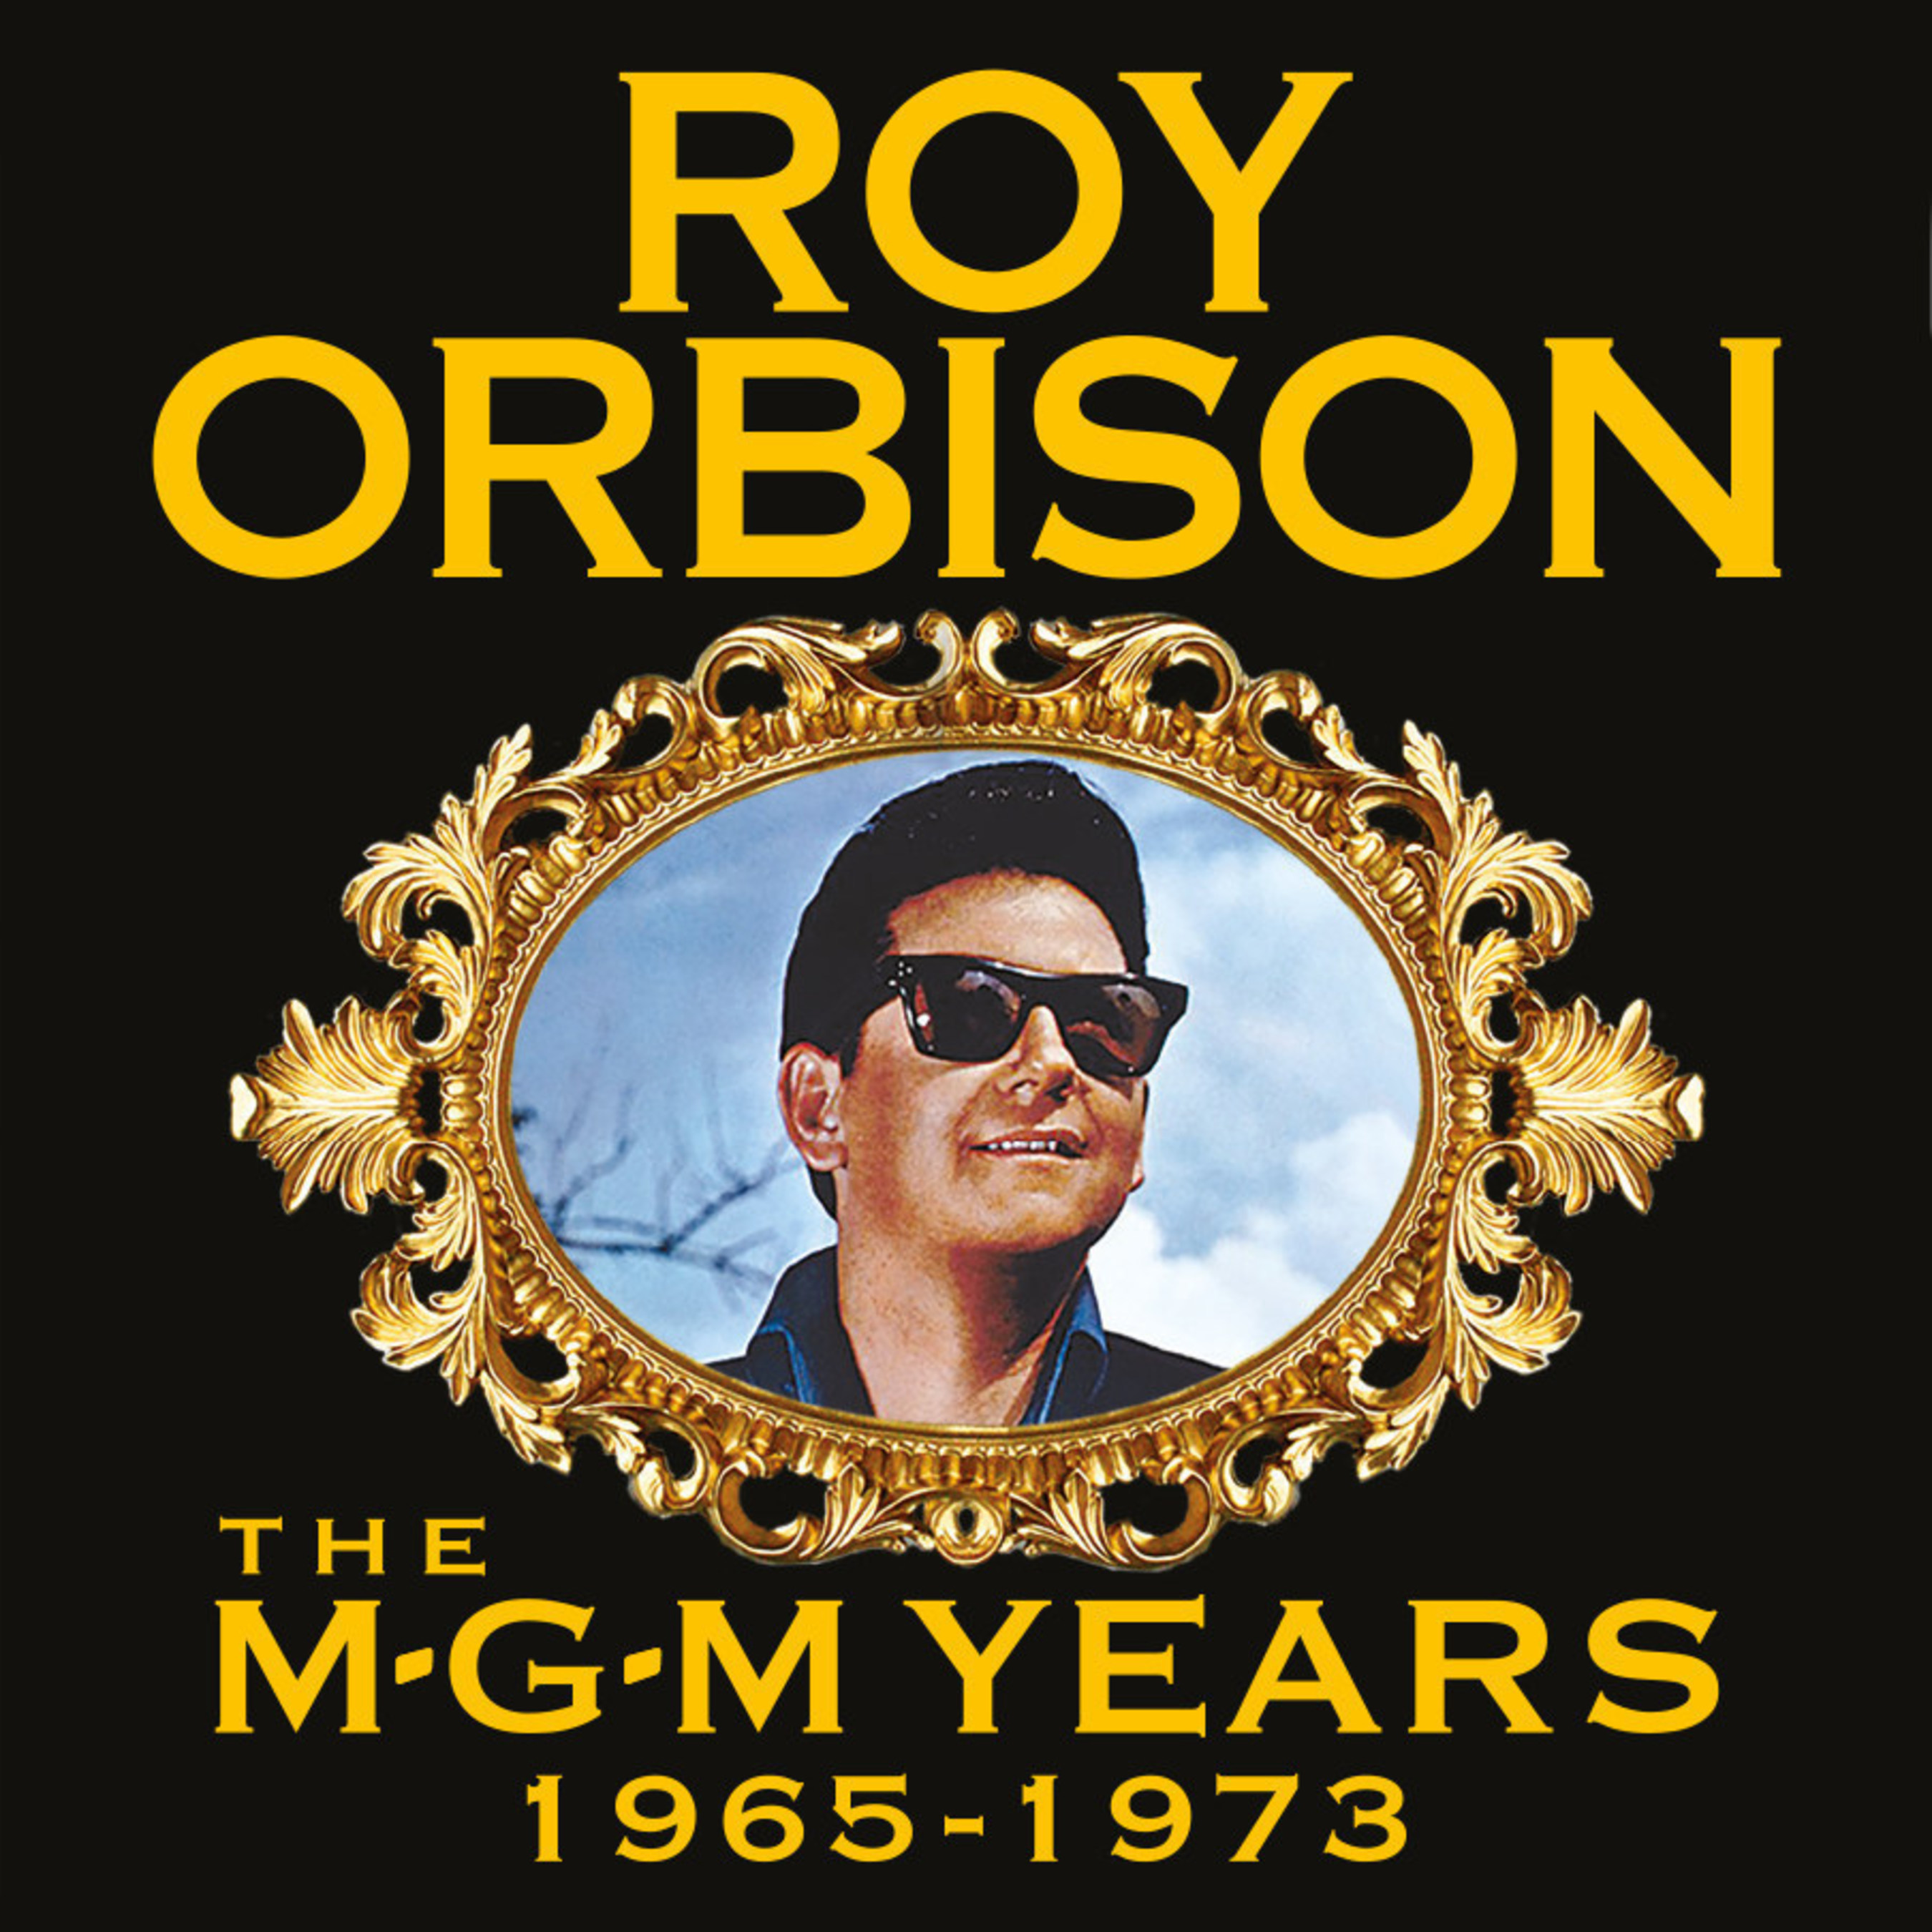 Roy Orbison's Historic MGM Catalog Chronicled In December 4 Release Of 'The MGM Years' Box Set + 'One Of The Lonely Ones, 'His 'Lost' Album From 1969, Commemoratin